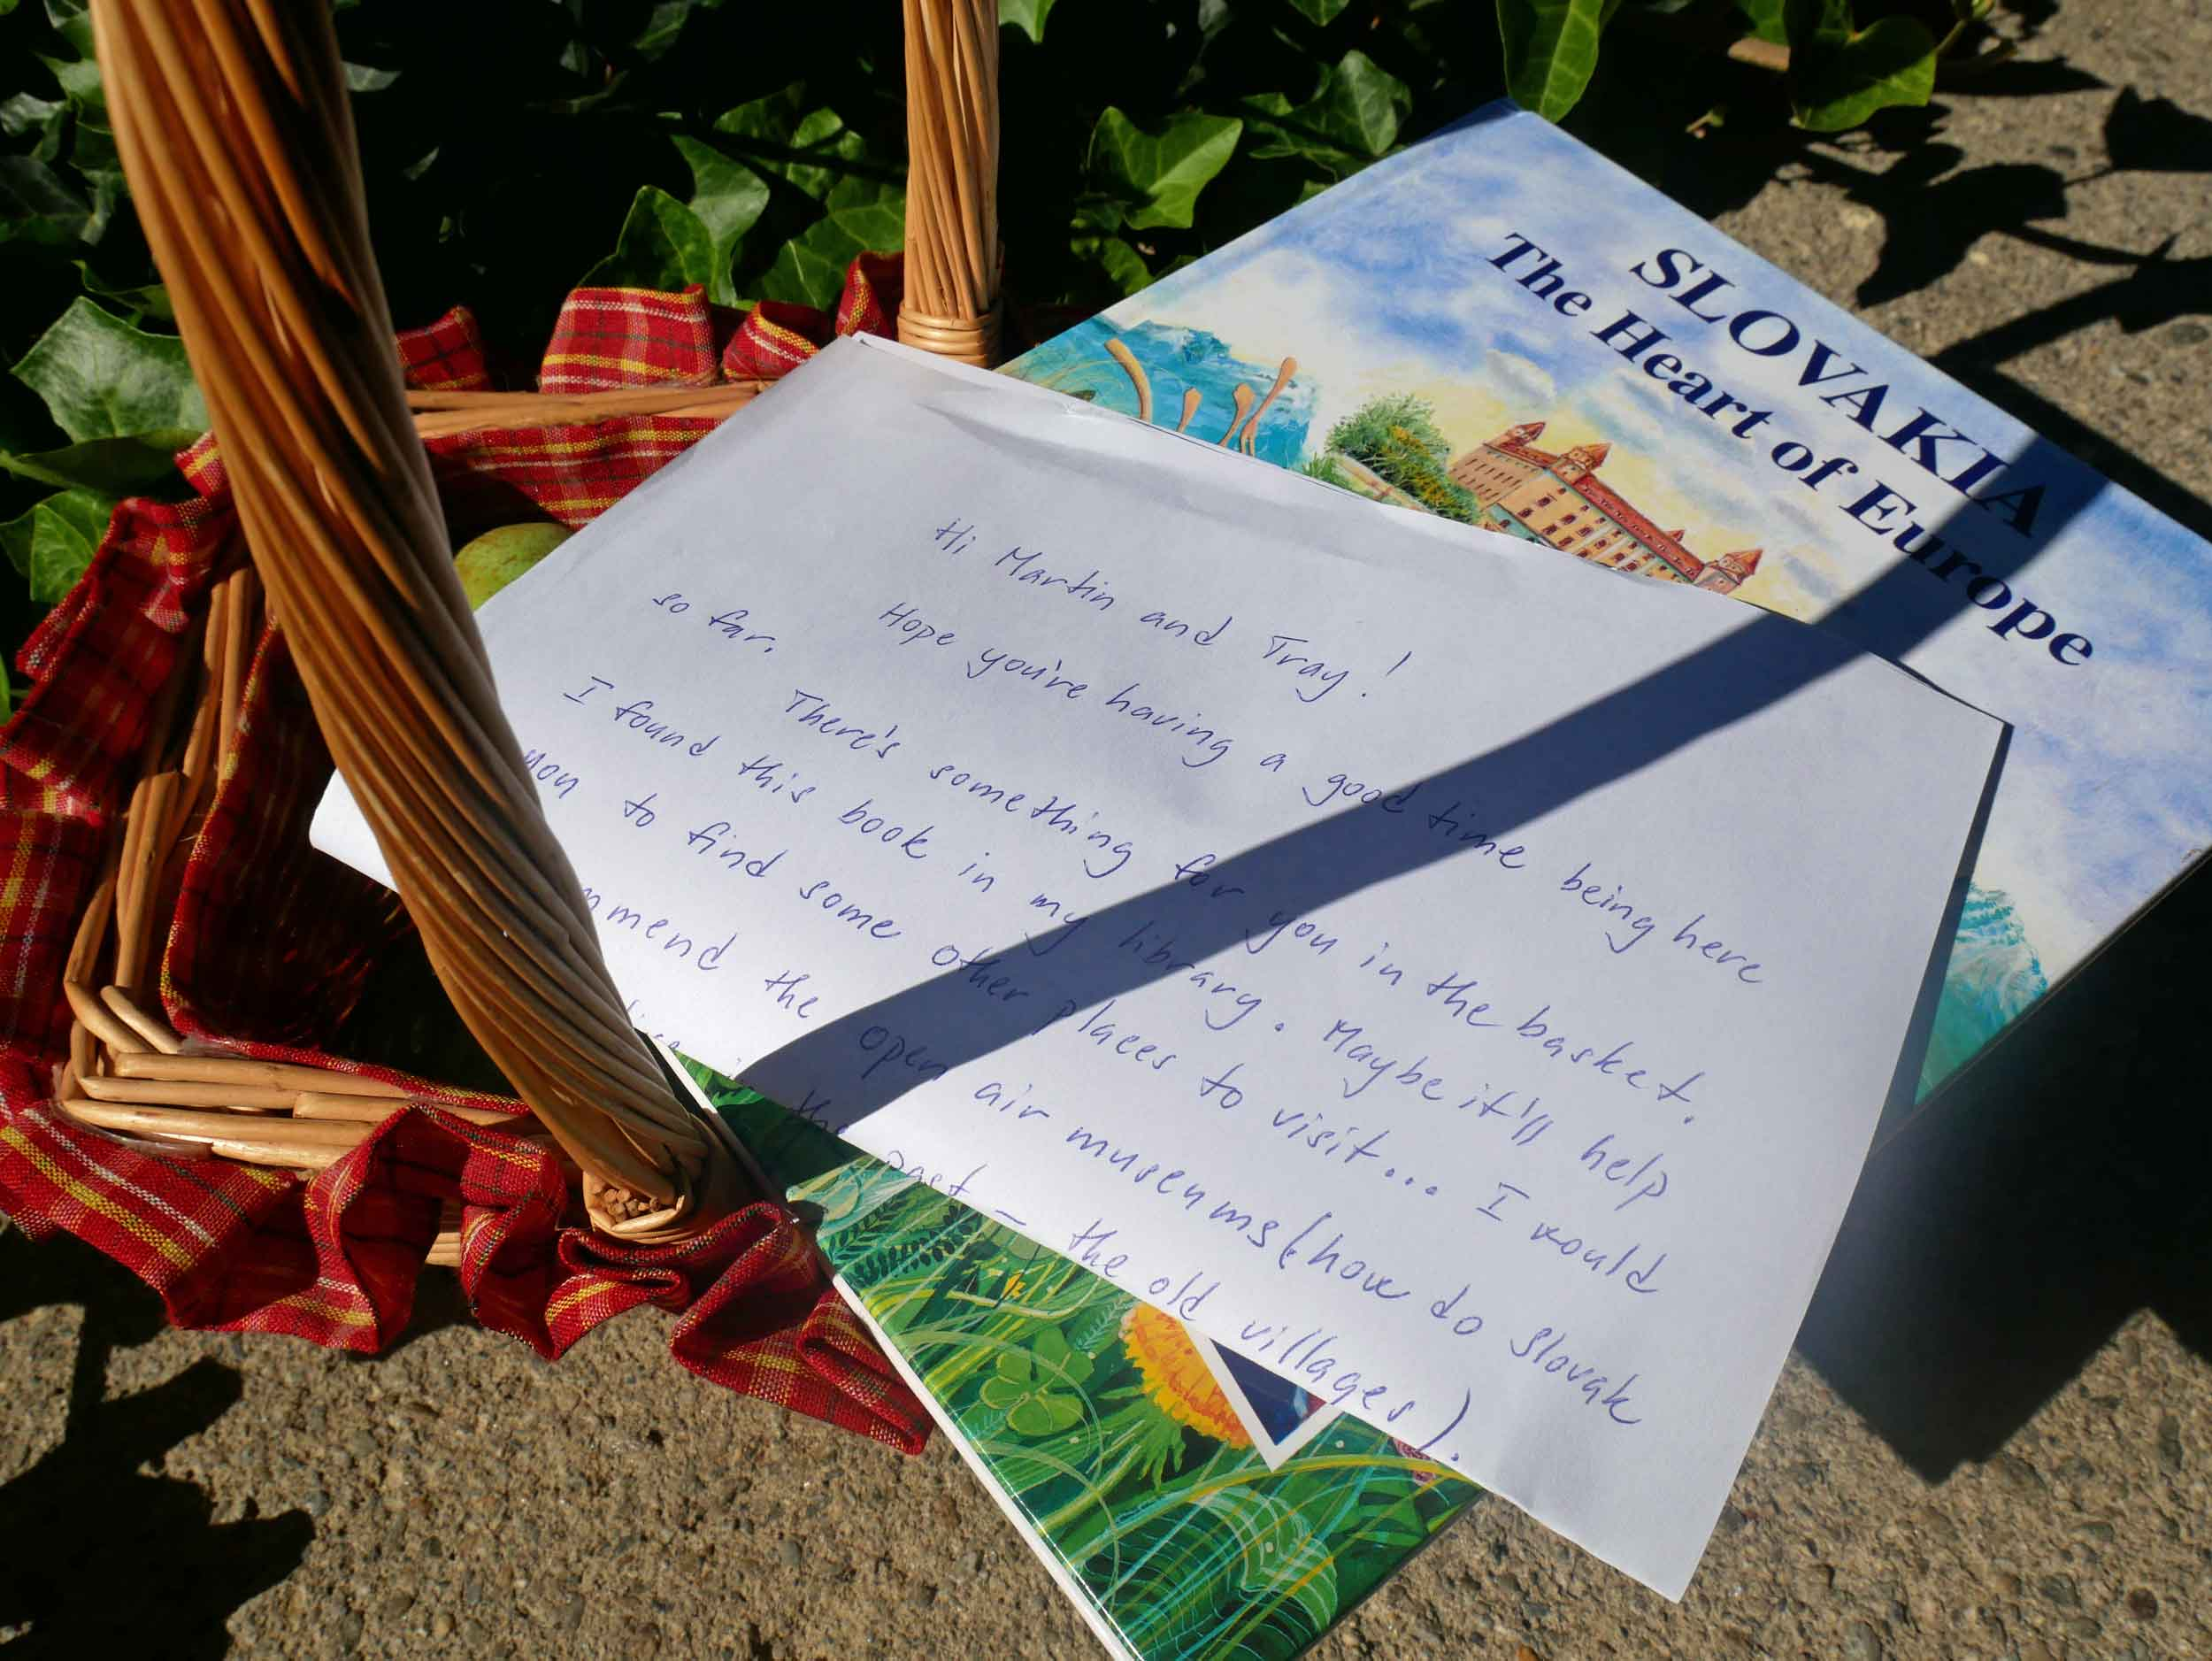 One morning, we found a basket of gifts from our Airbnb hosts - local pears and a book on the history of the country.